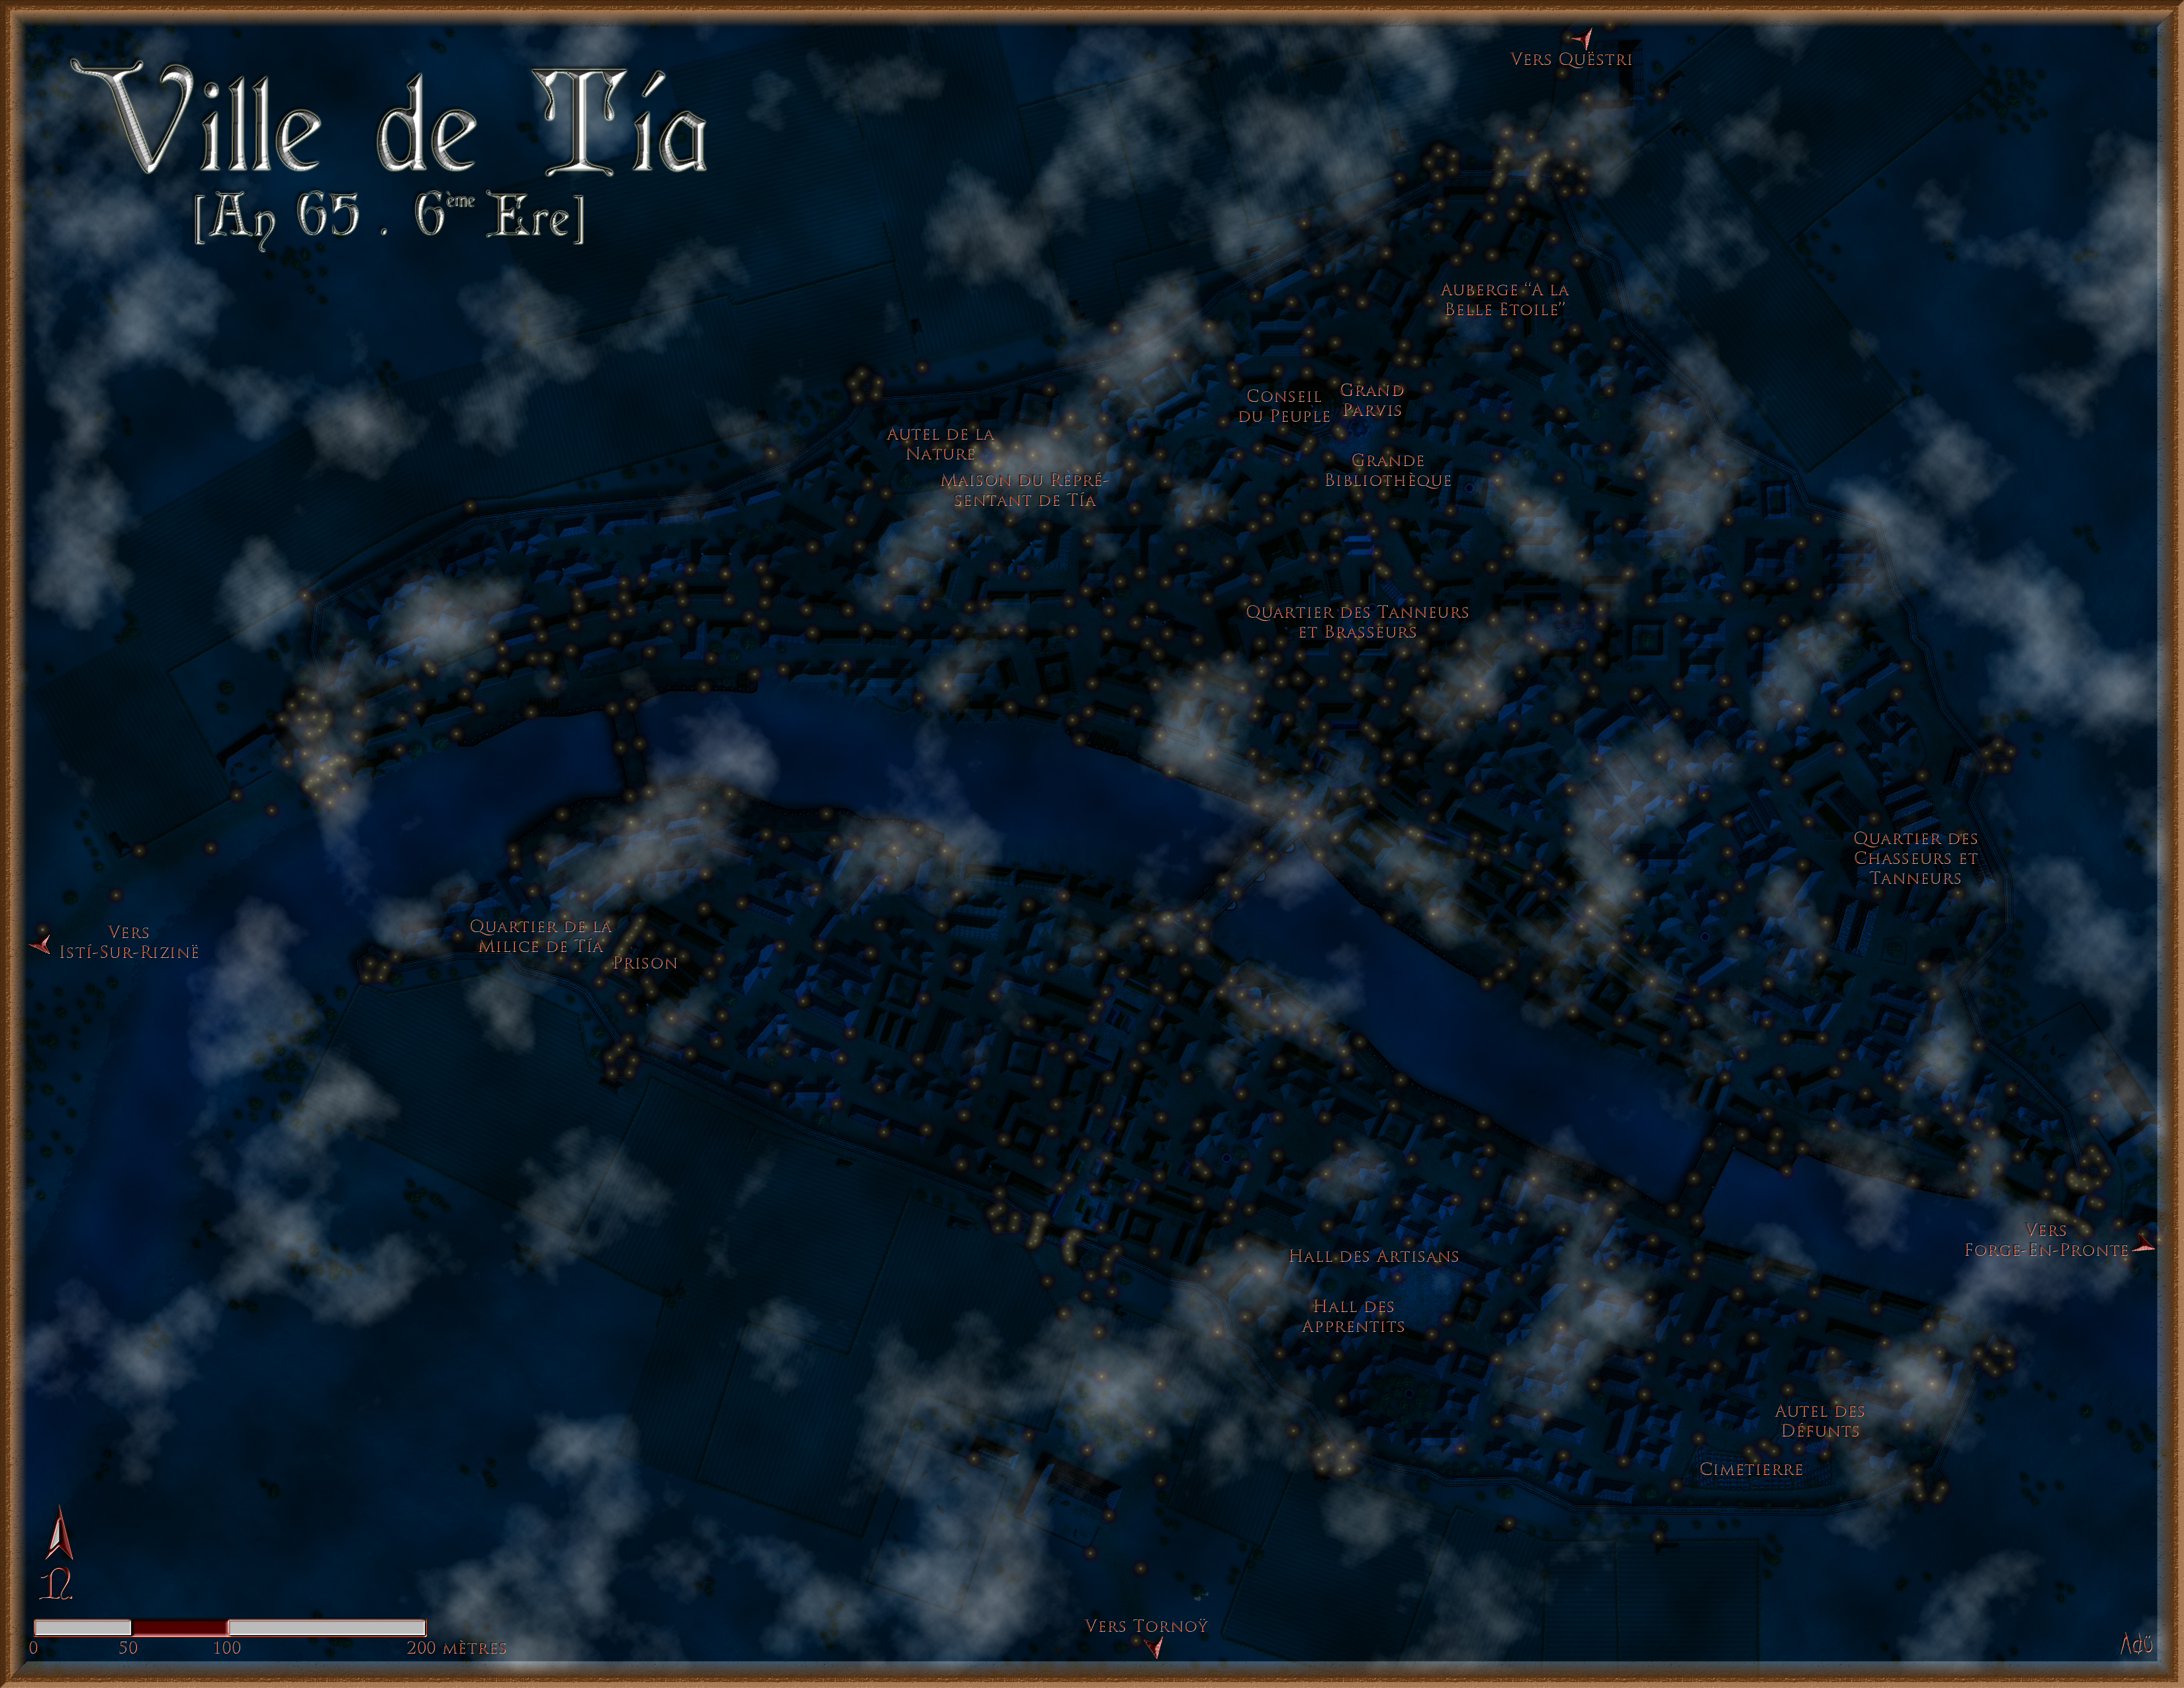 The city of T�a by night